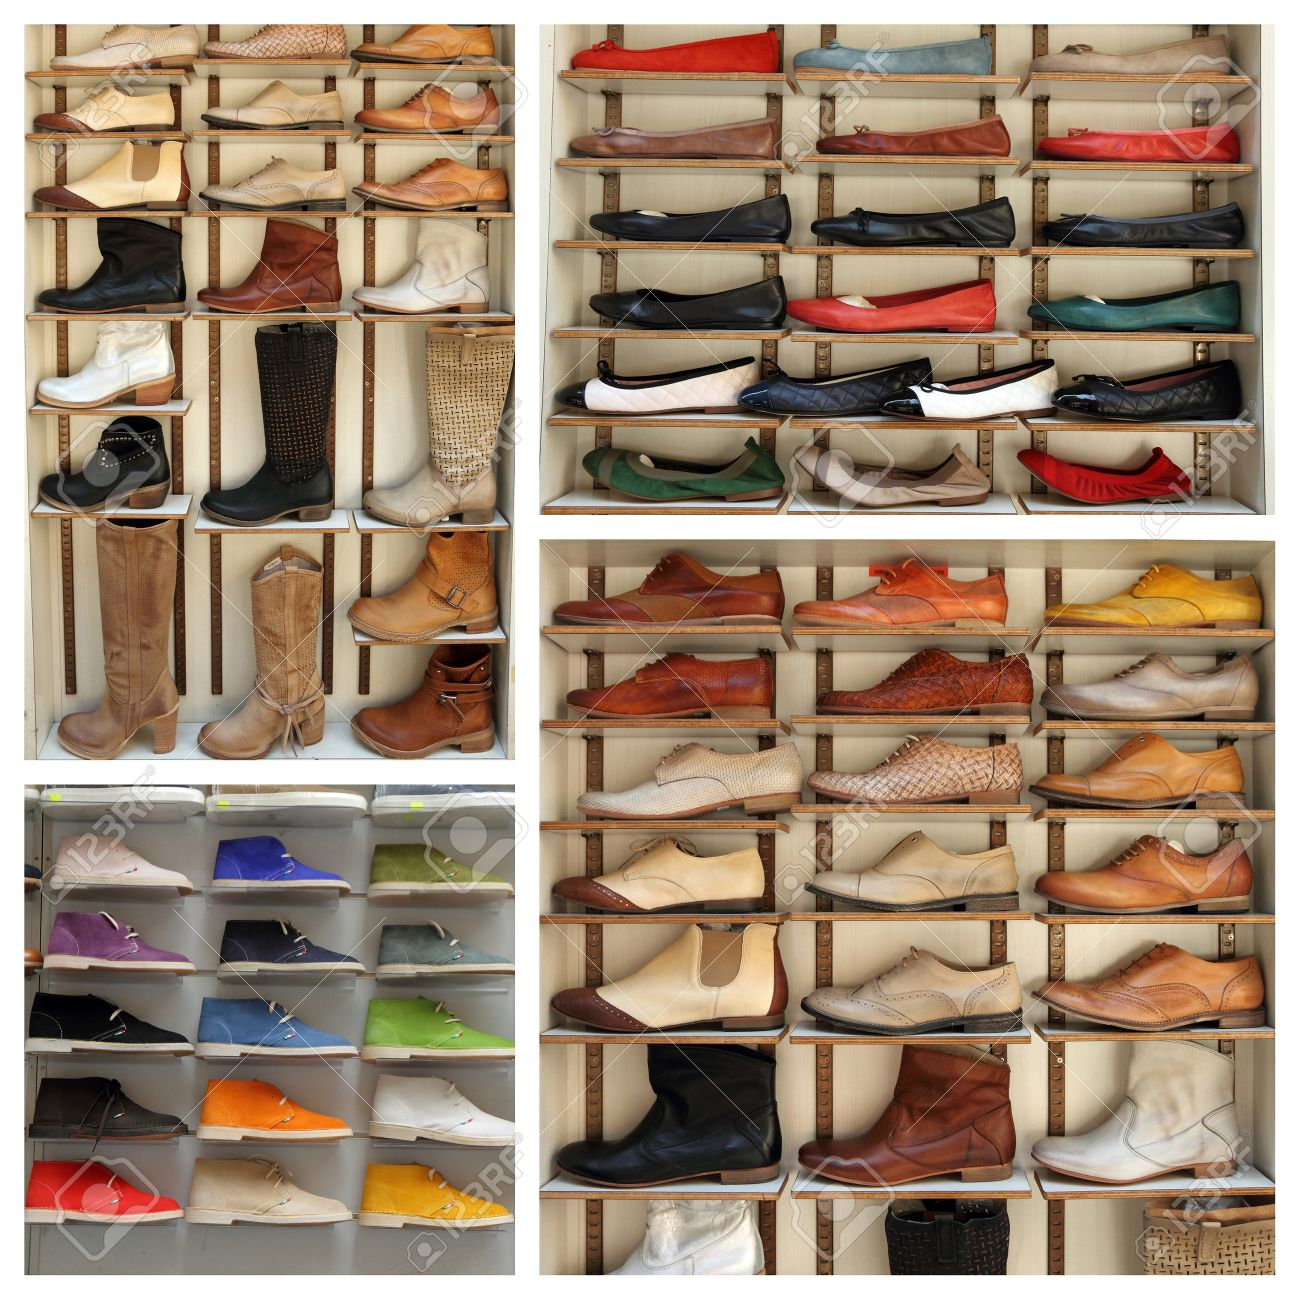 4933cbb50a Exibition Shelves With Various Leather Shoes - Collage